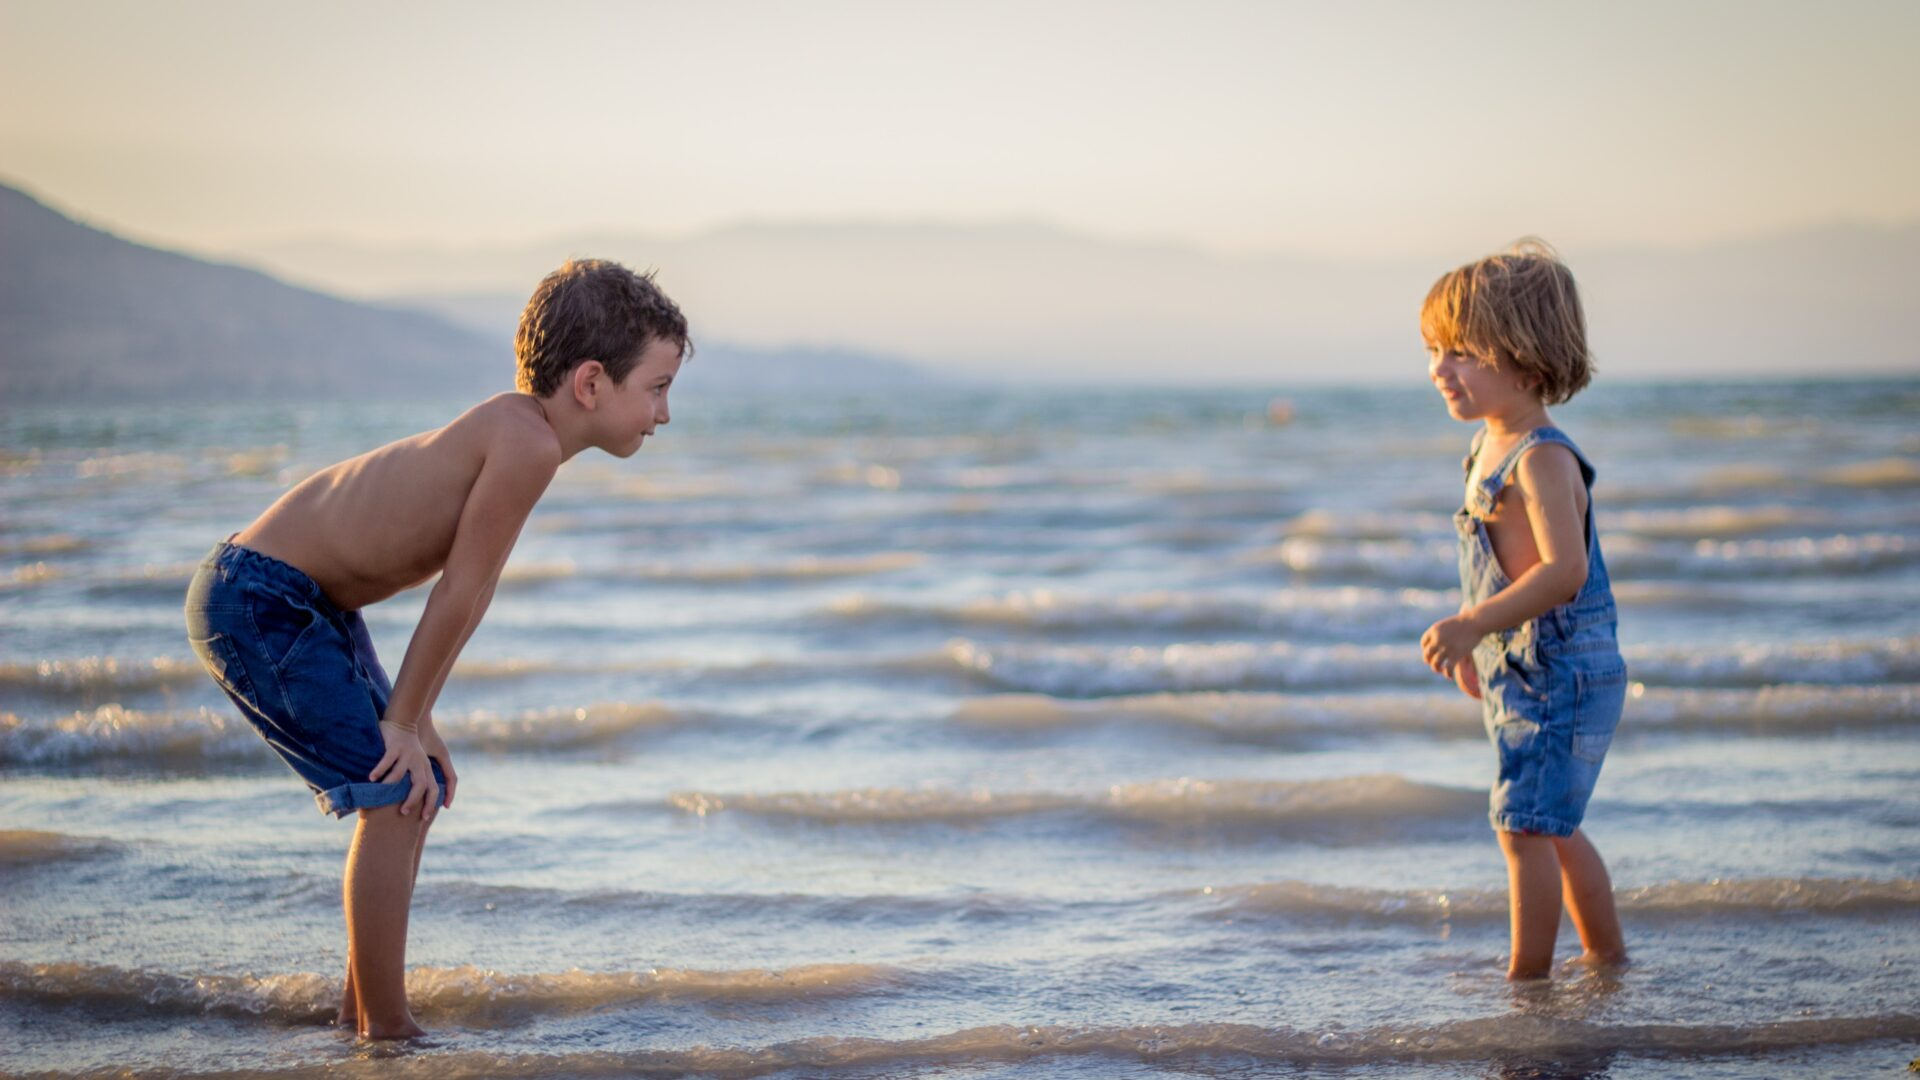 Two children playing in the water